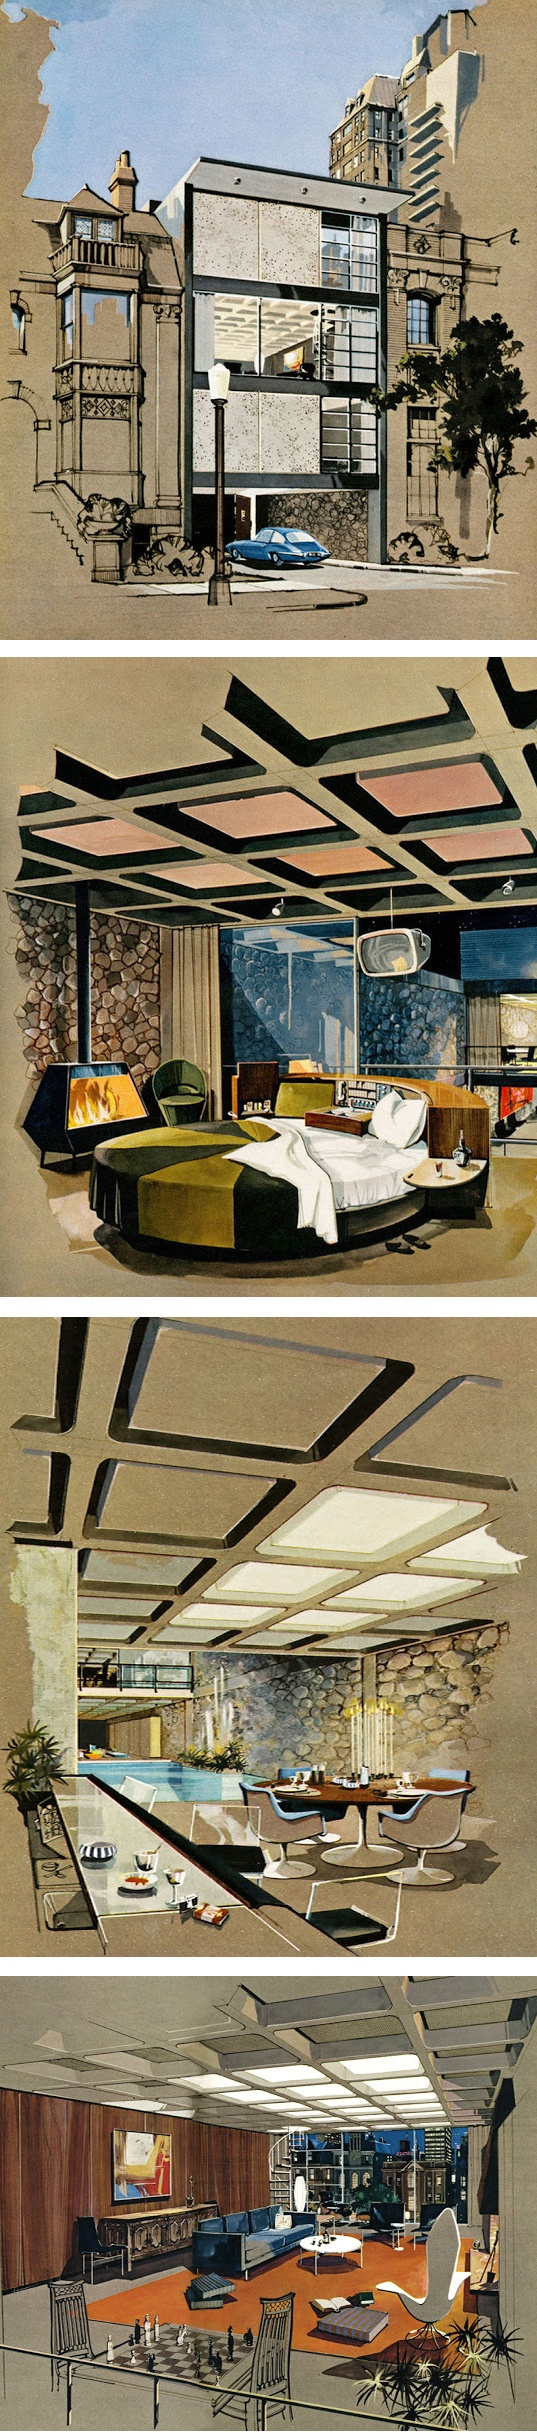 The 1962 Playboy Town House - A fantasy bachelor pad designed by architect R. Donald Jaye and rendered in gouache and ink by Humen Ten